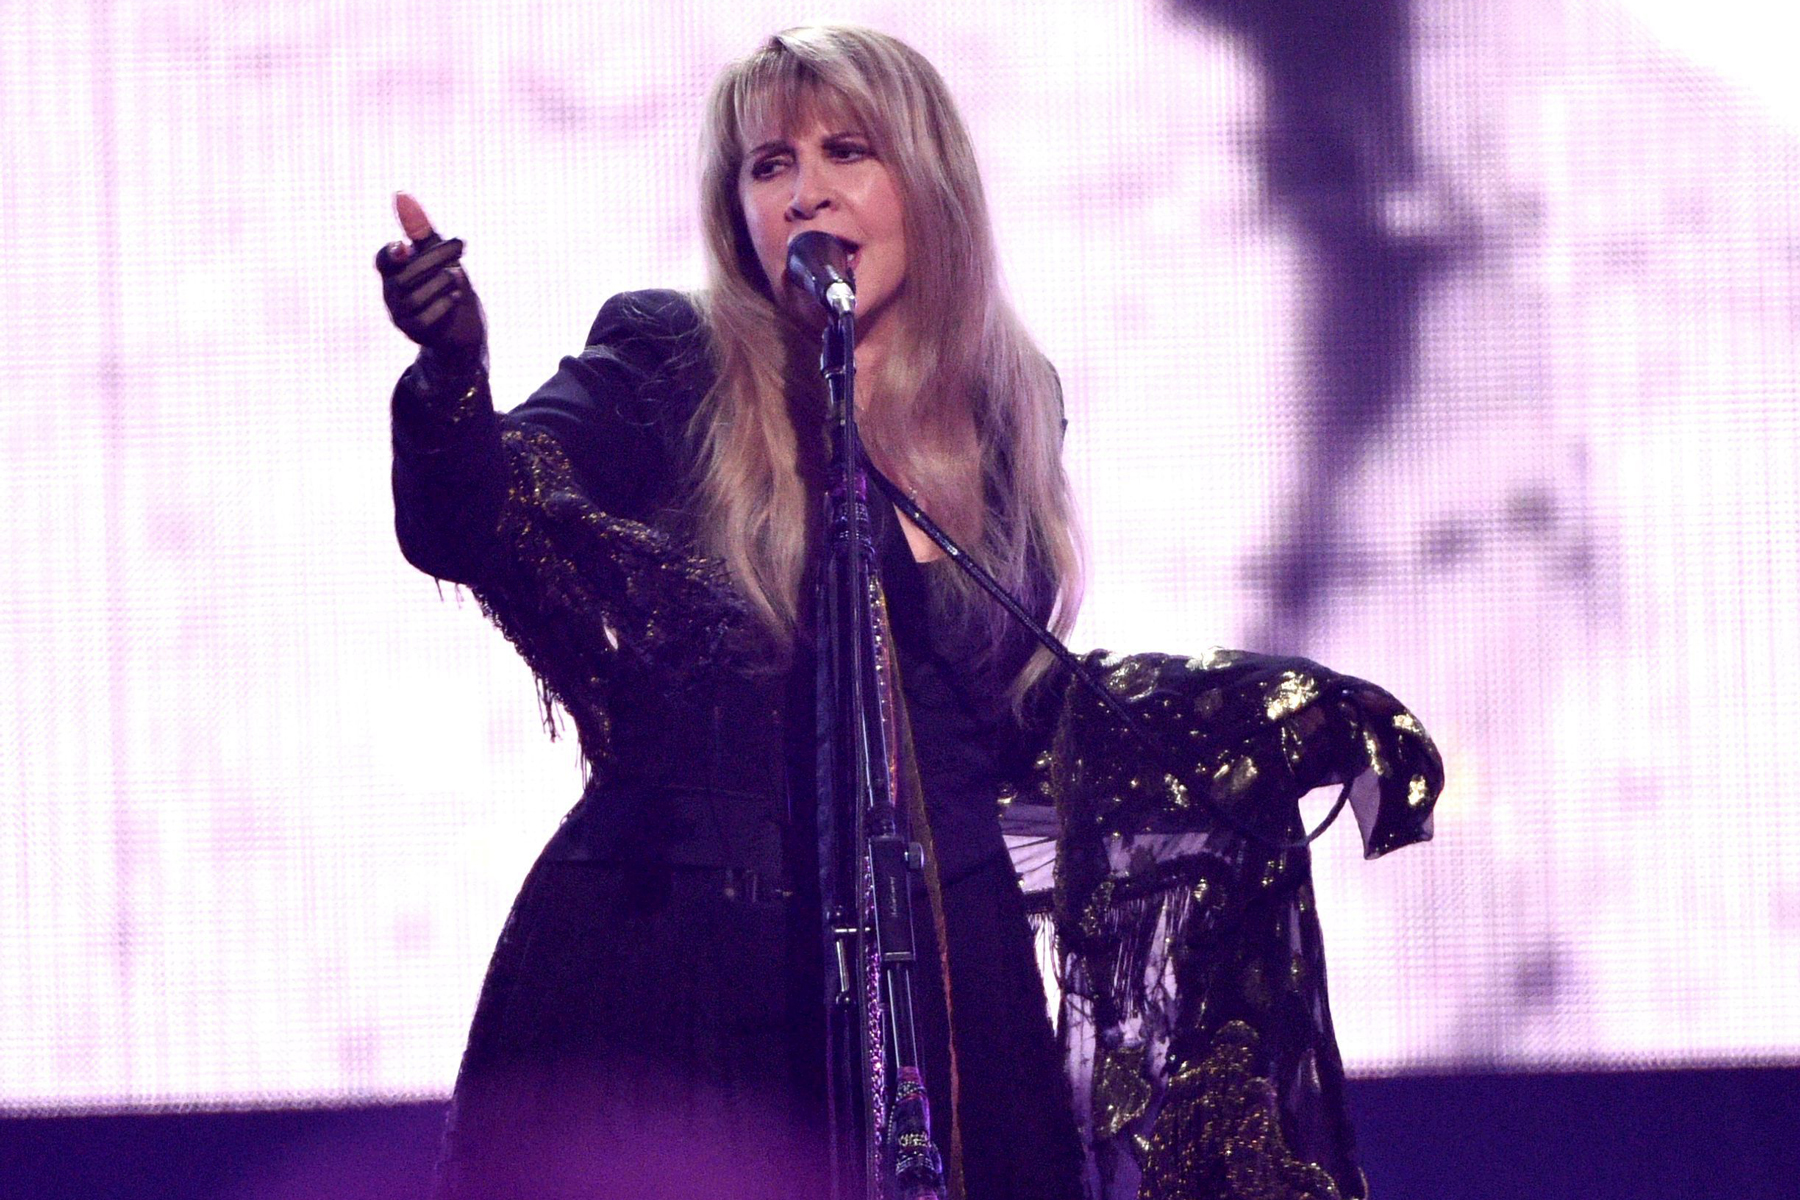 Inductee Stevie Nicks performs at the Rock & Roll Hall of Fame induction ceremony at the Barclays Center, in New York2019 Rock and Roll Hall of Fame Induction Ceremony - Show, New York, USA - 29 Mar 2019